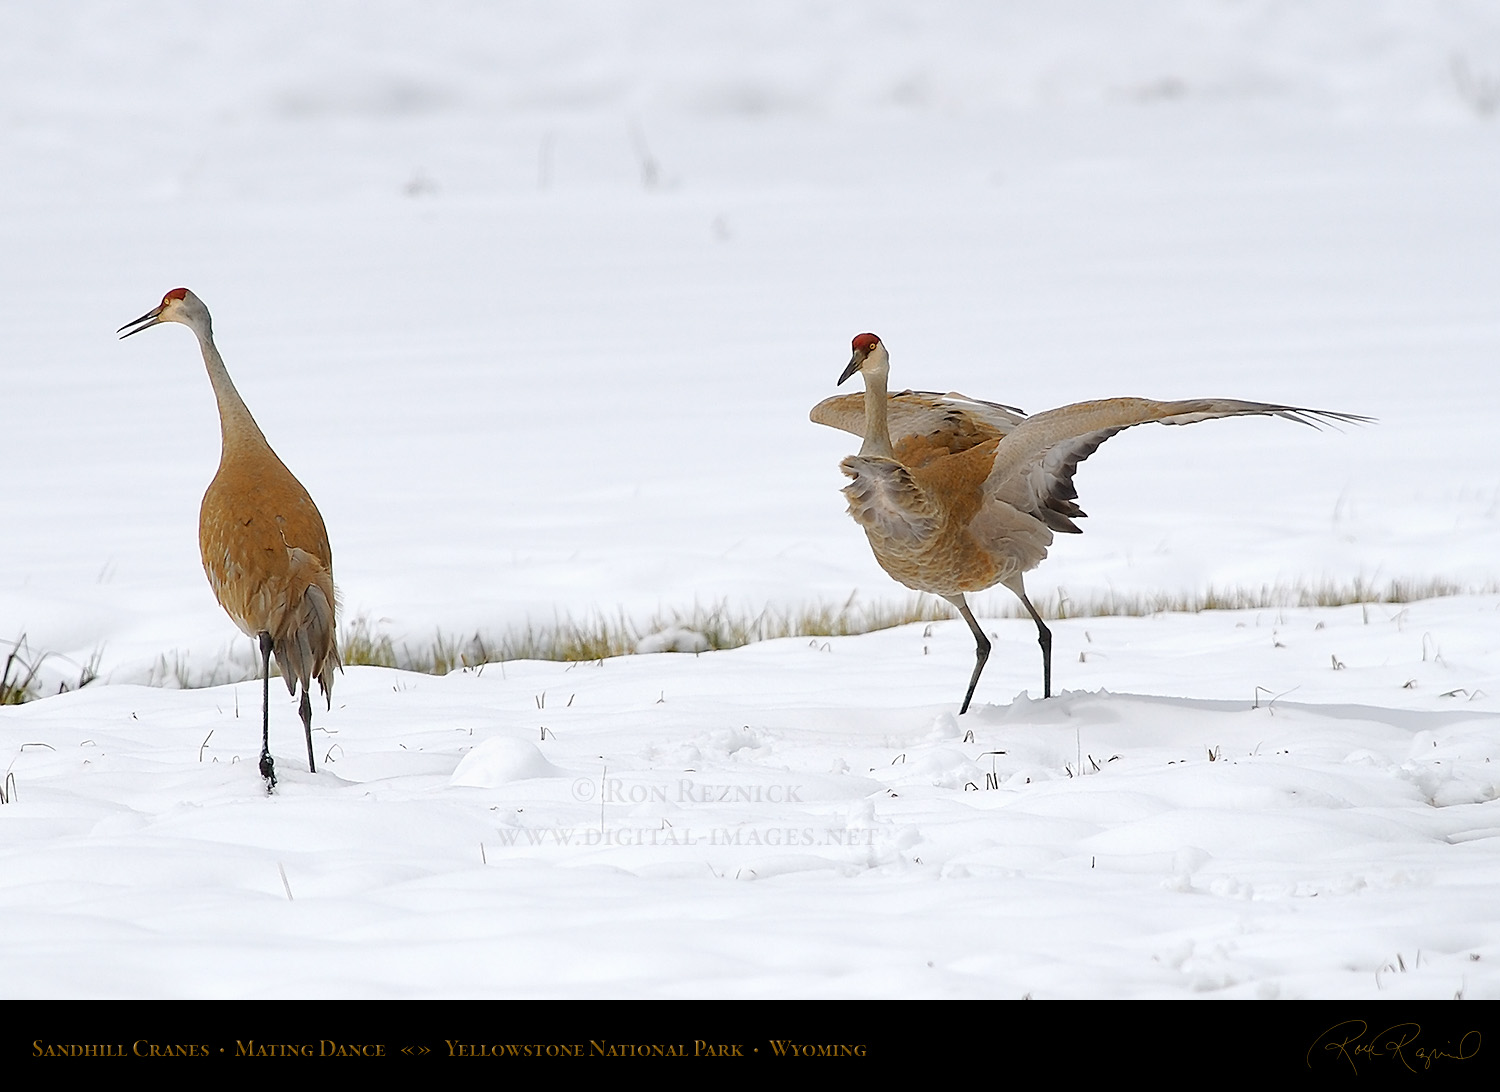 Mating Positions Sandhill crane mating dance